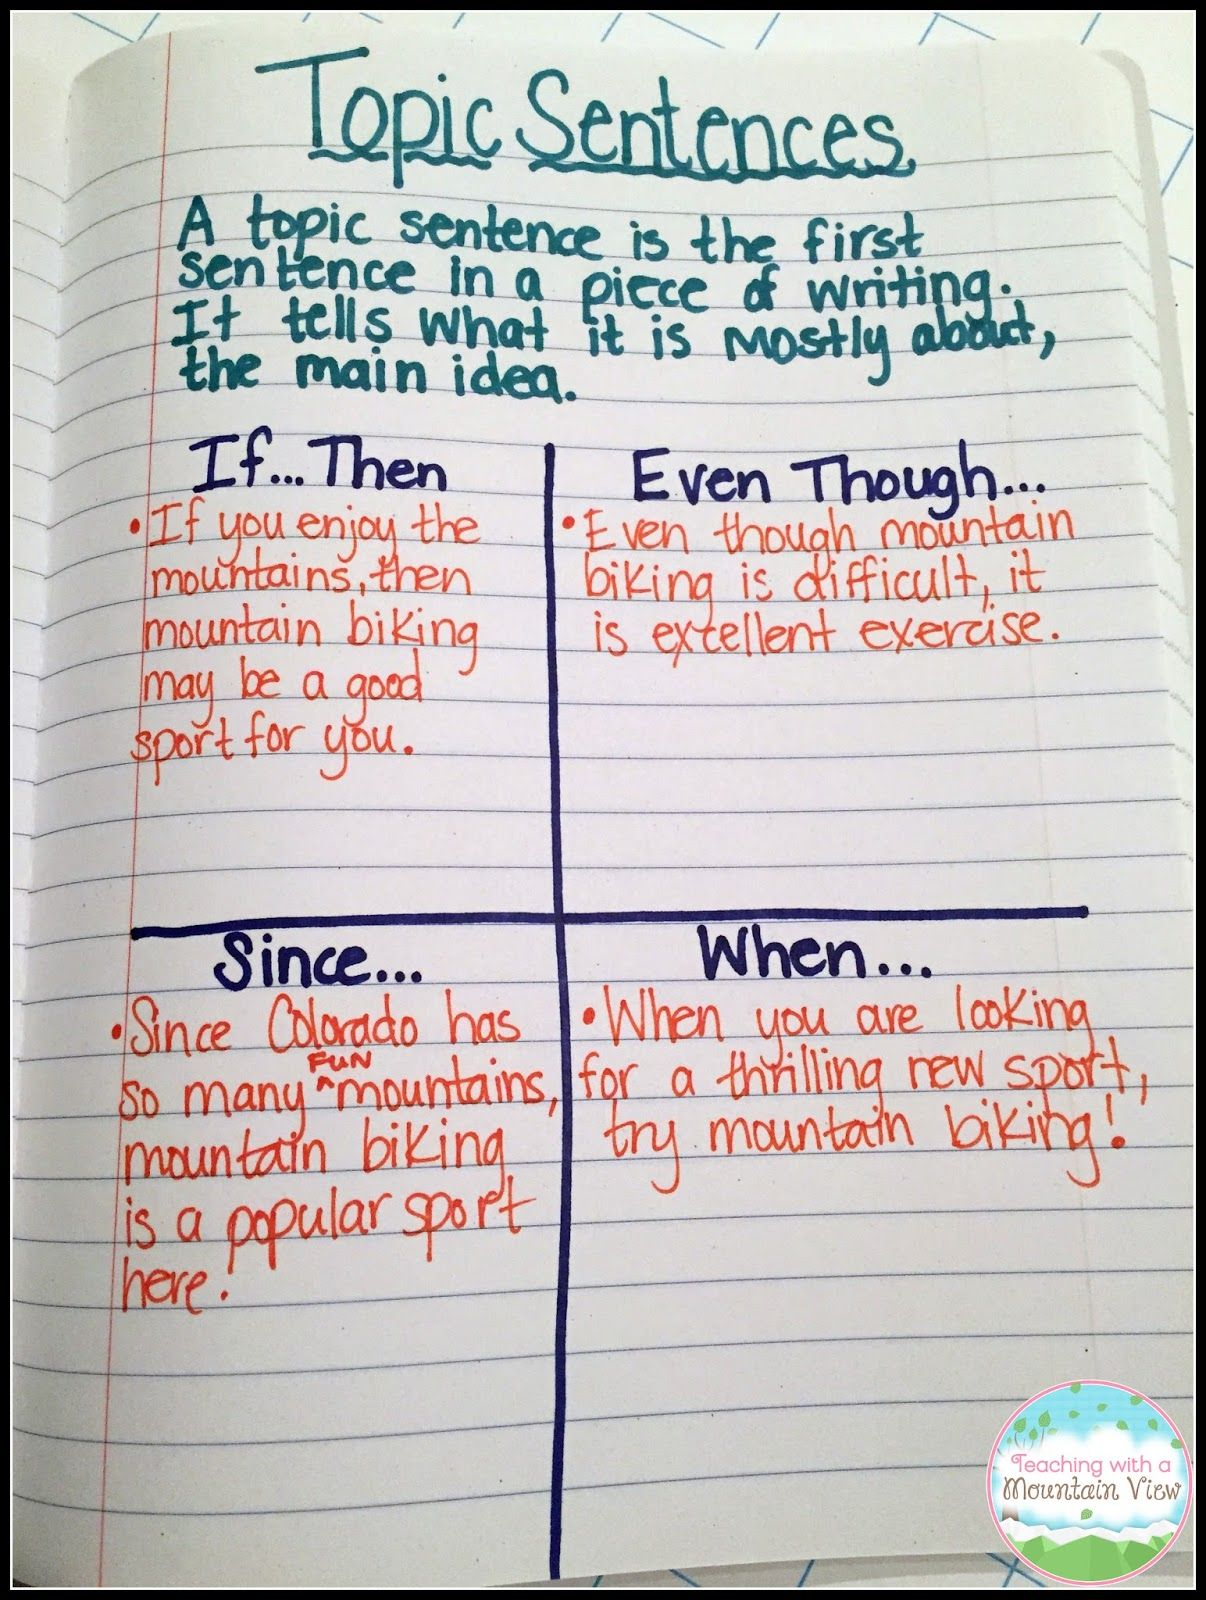 Topic Sentences With Images